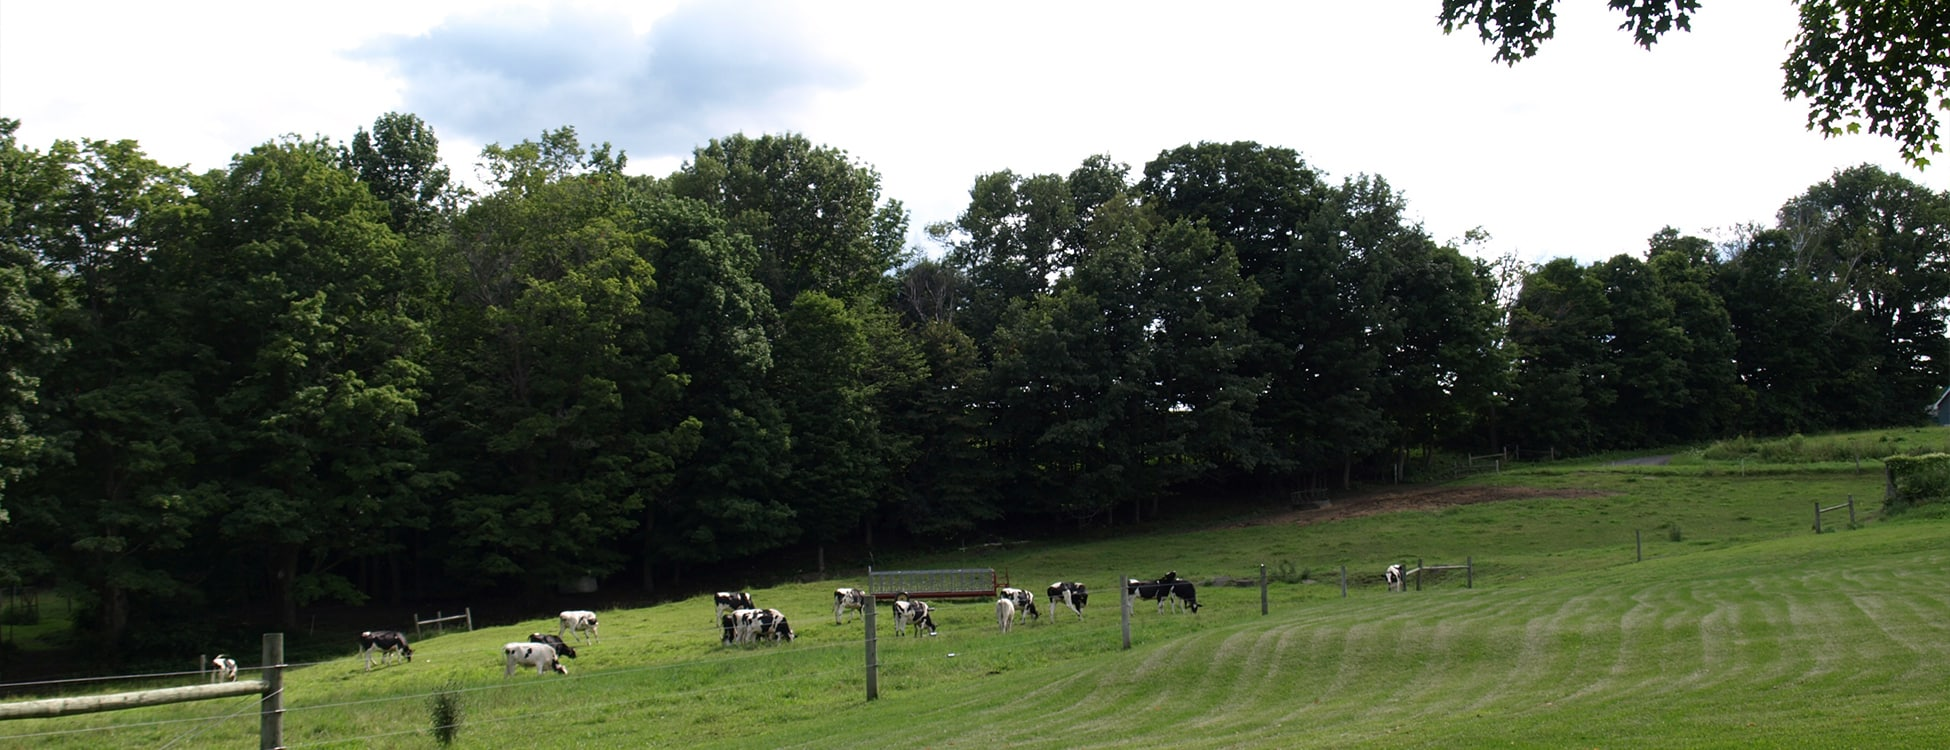 Vermont agriculture, cows, Randolph Center campus